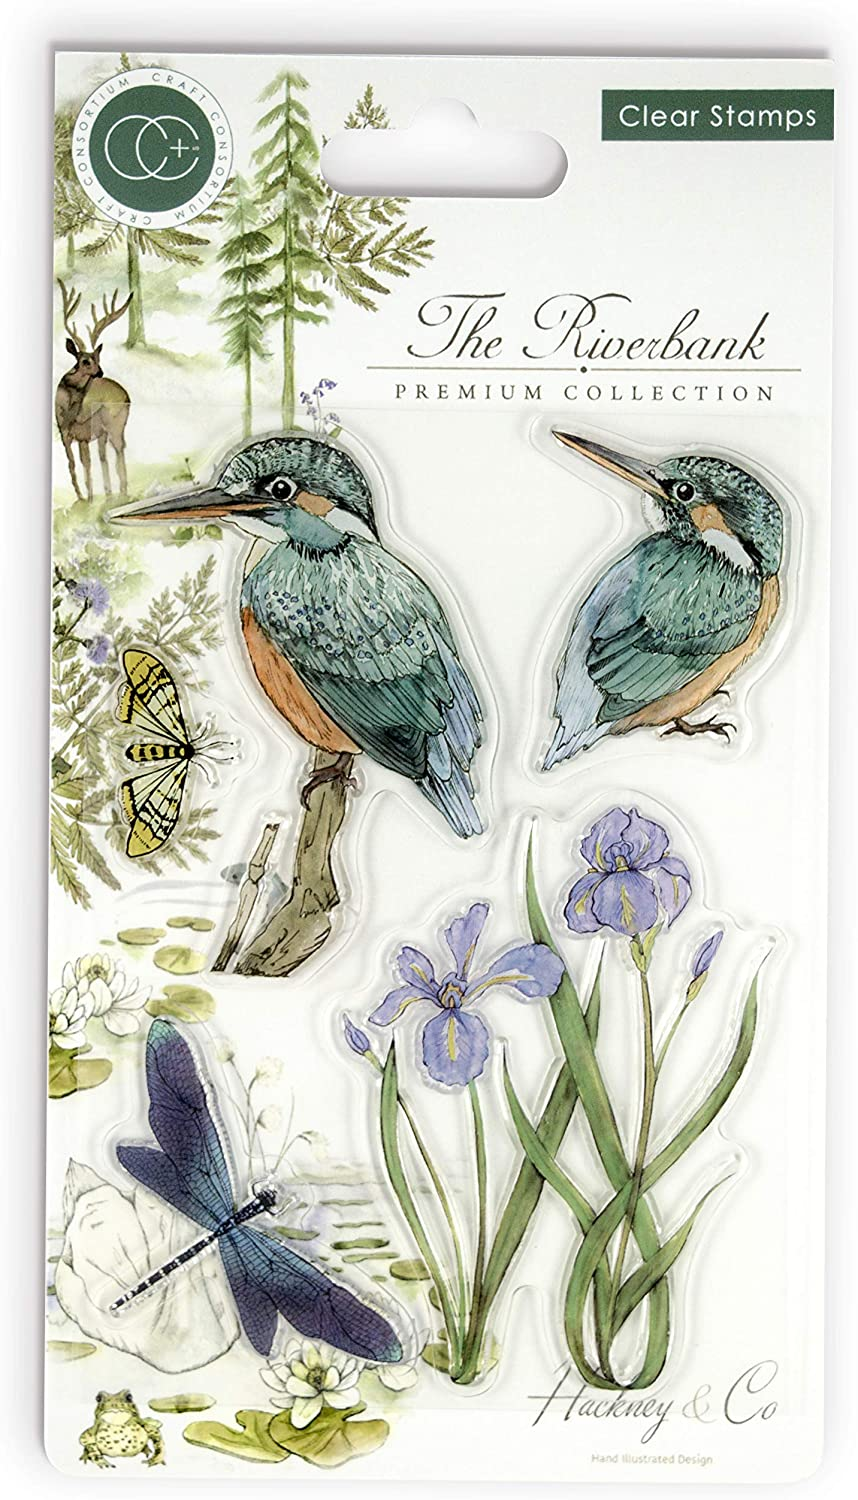 'Kingfisher' A6 Clear Stamp - Craft Consortium from micmoc.com